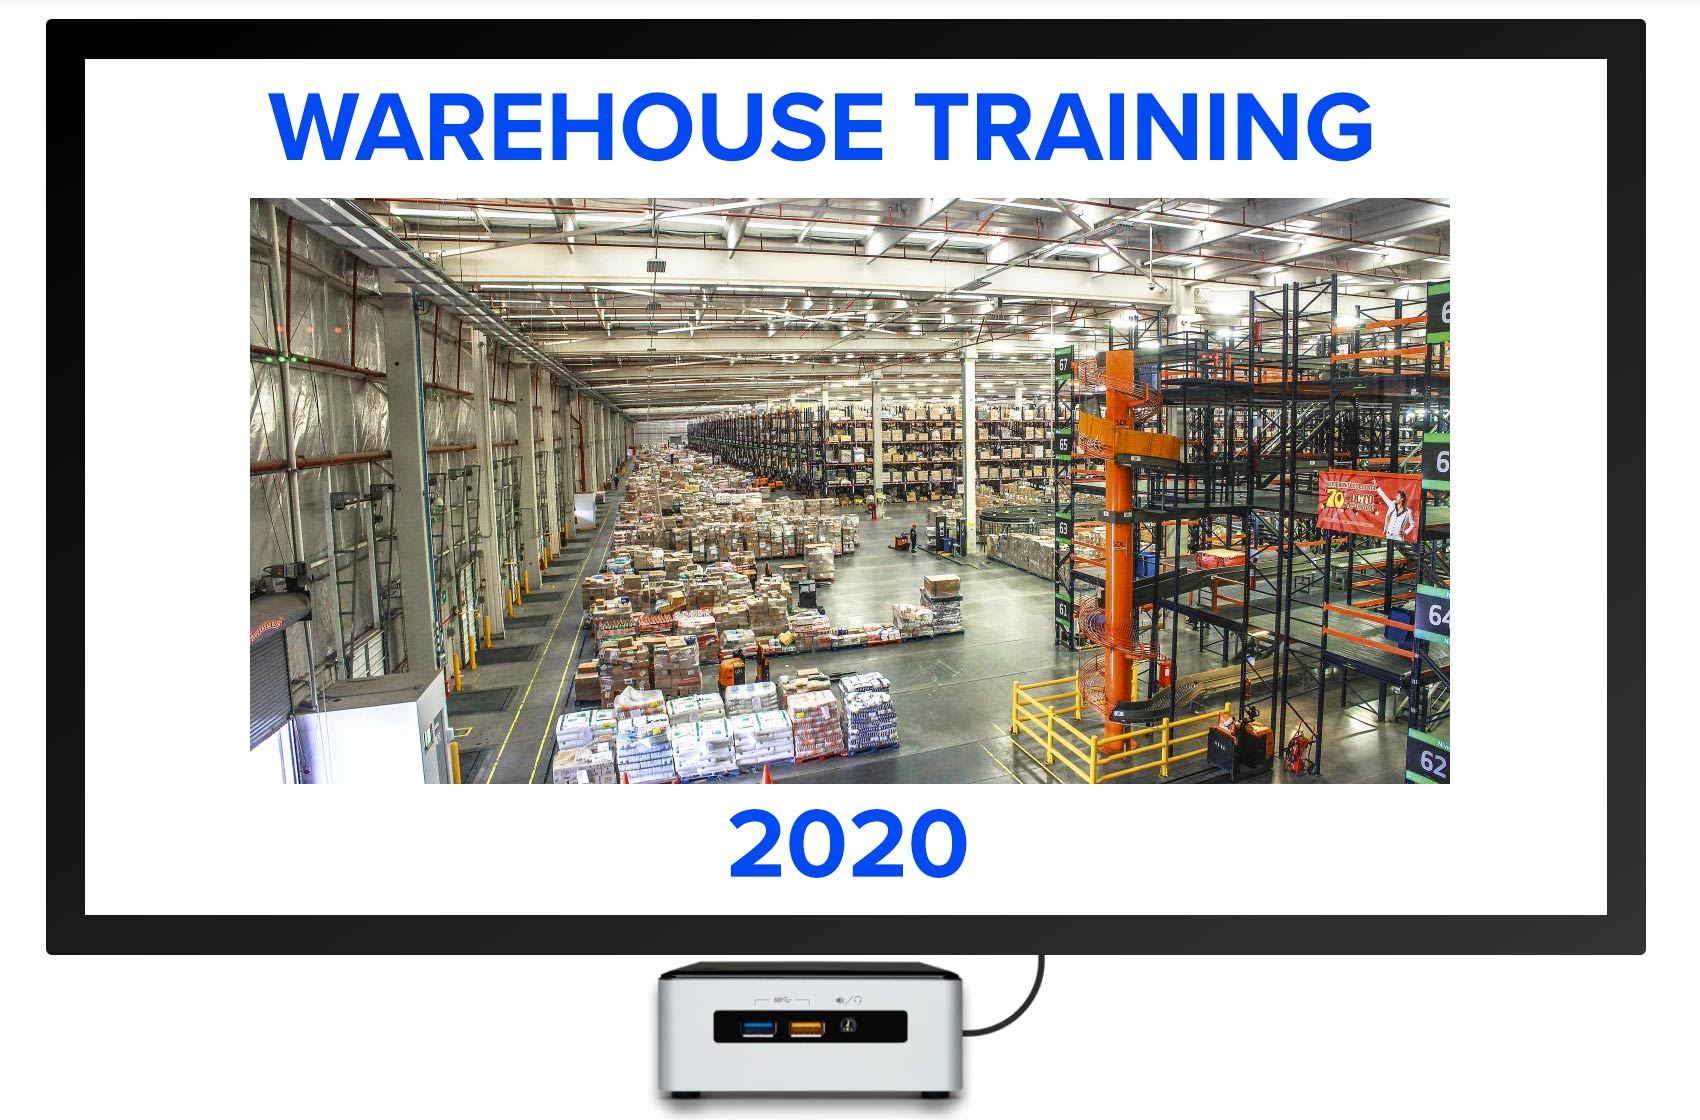 warehouse training digital signage presentation